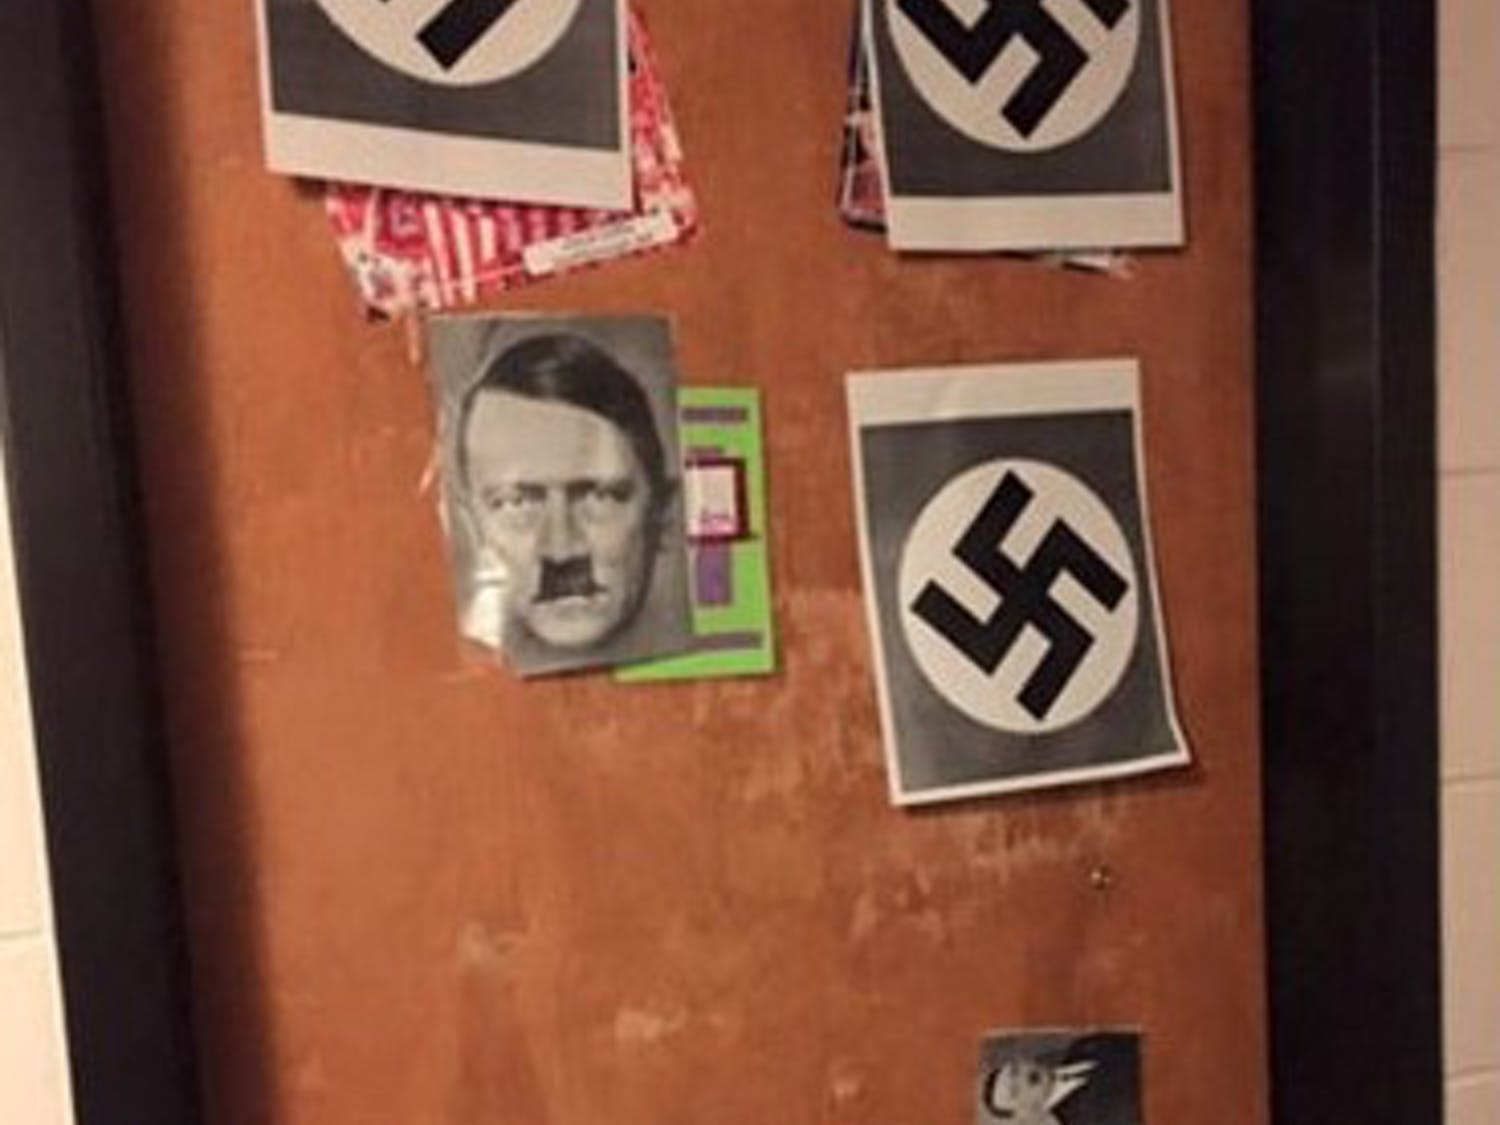 Students taped pictures of Hitler and swastikas to another resident's door Jan. 26.